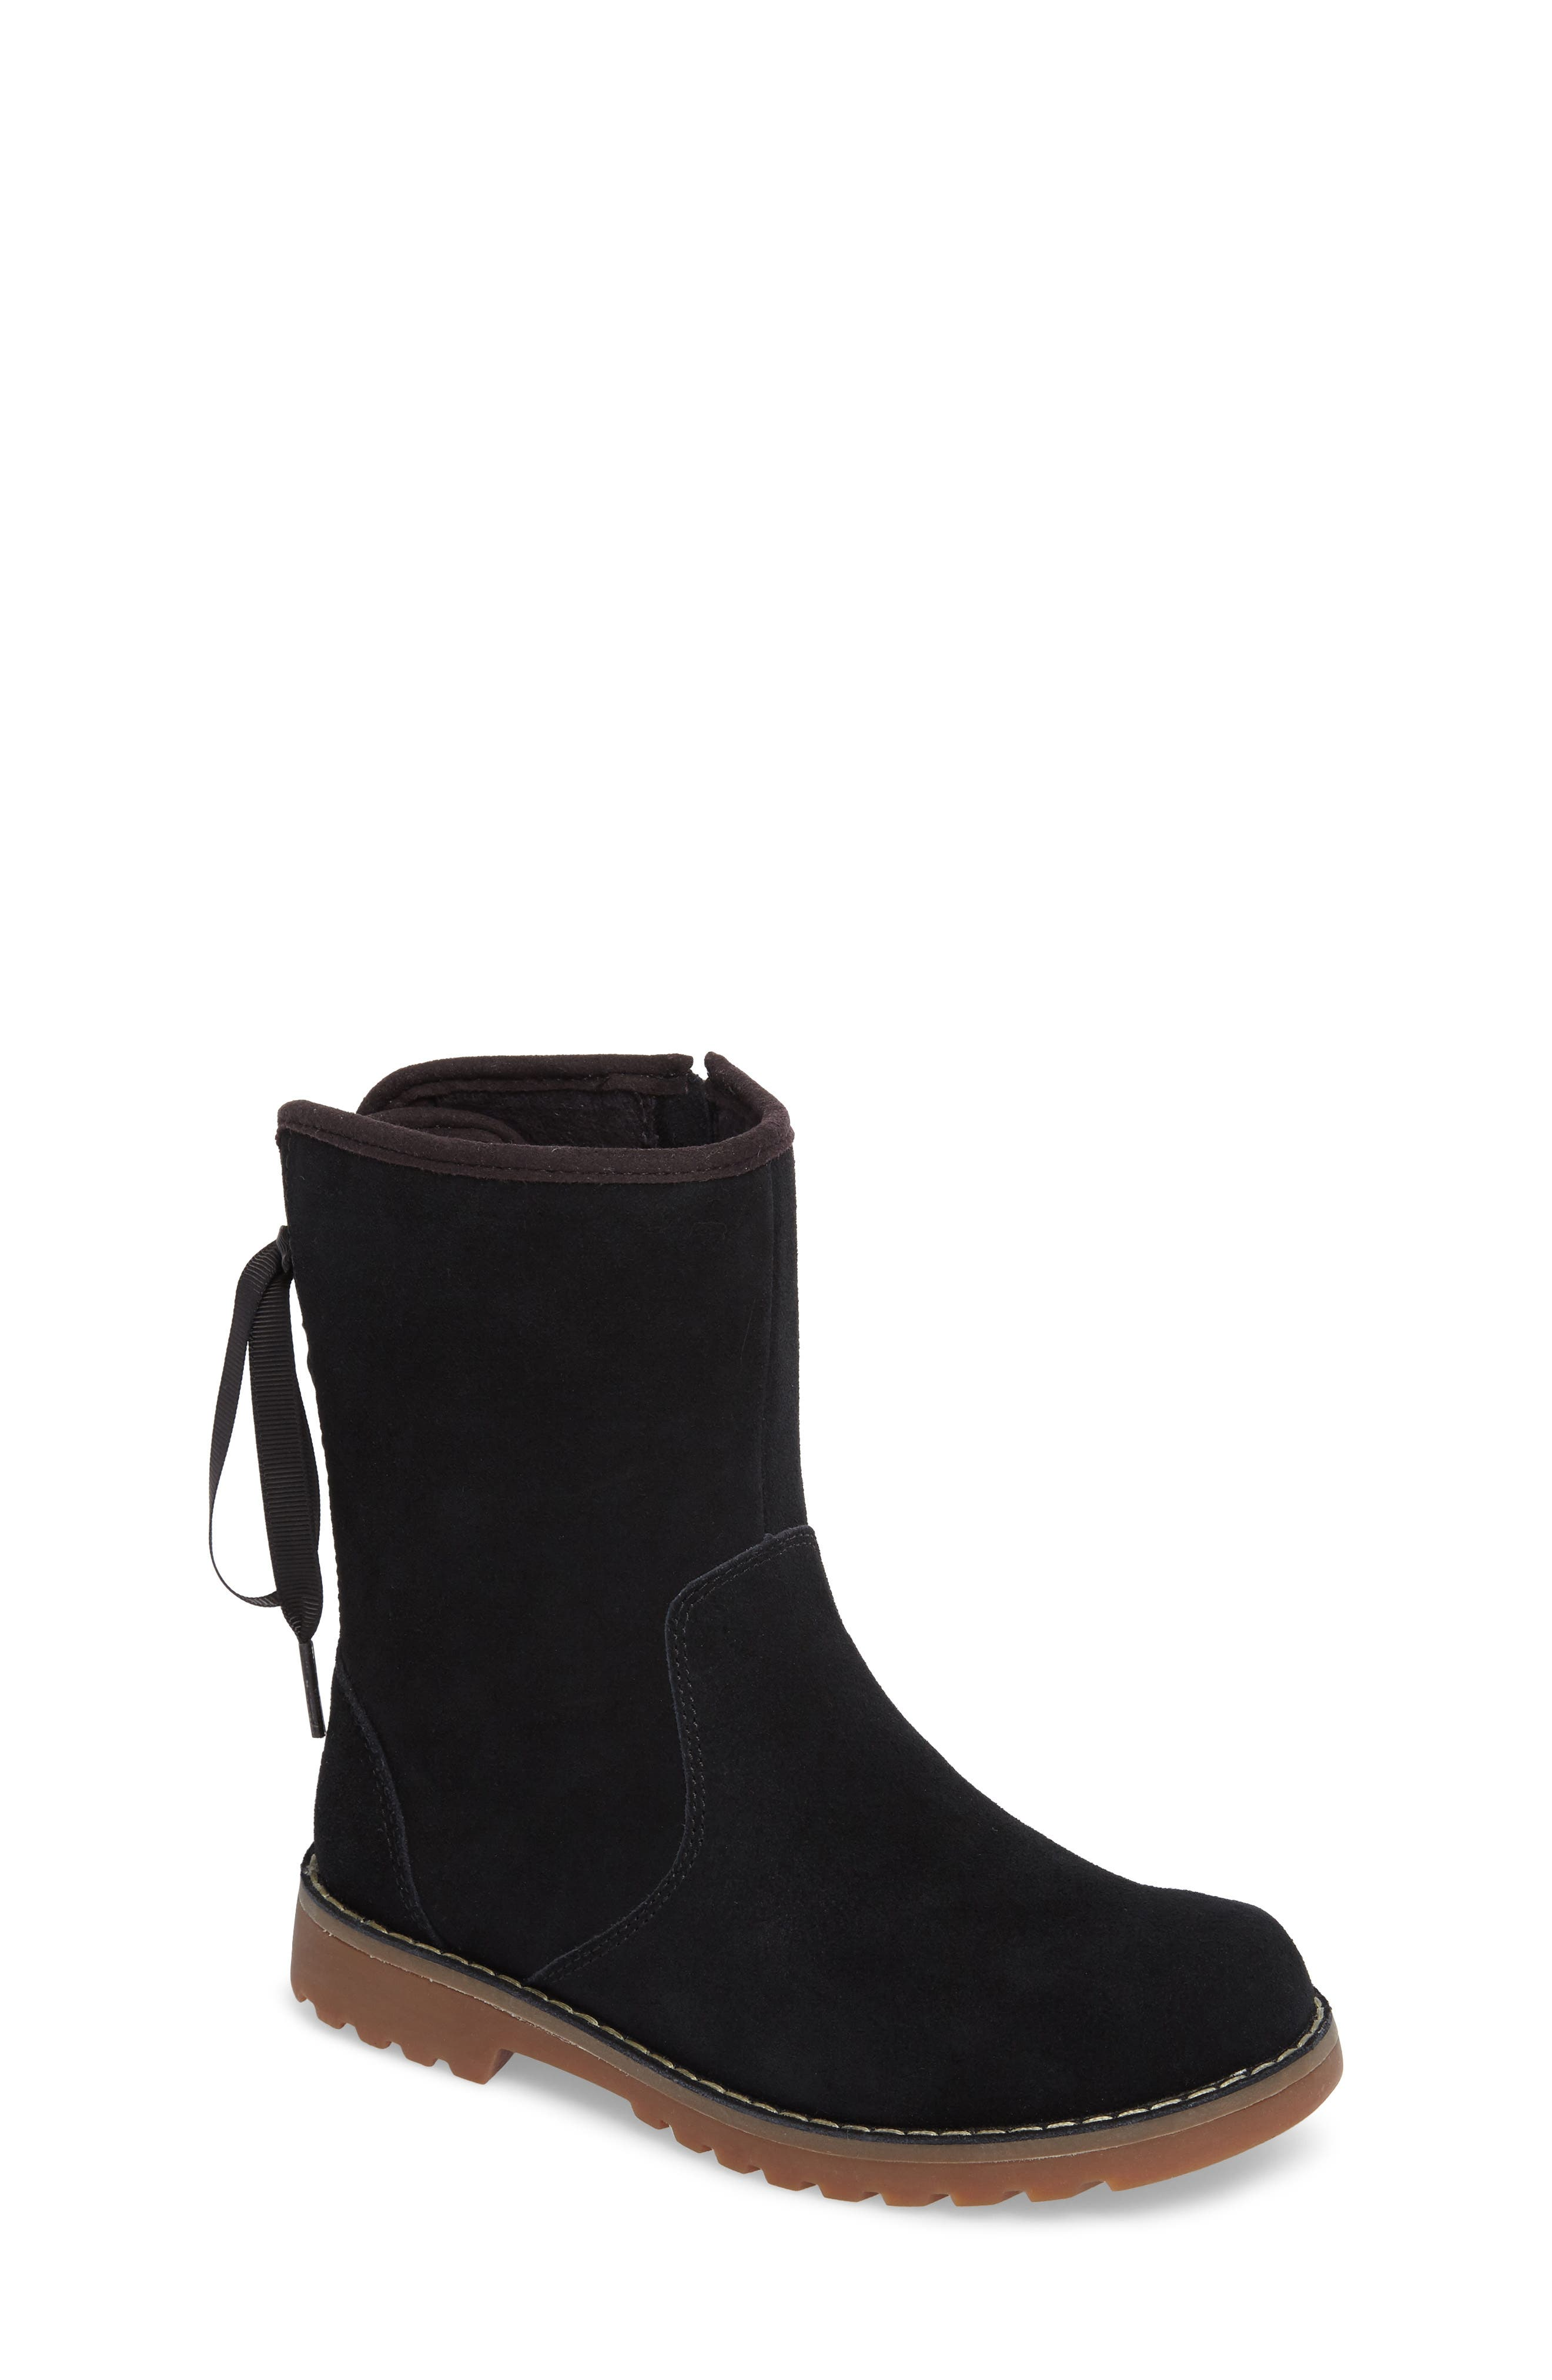 'Corene' Suede Boot, Main, color, BLACK/ BLACK